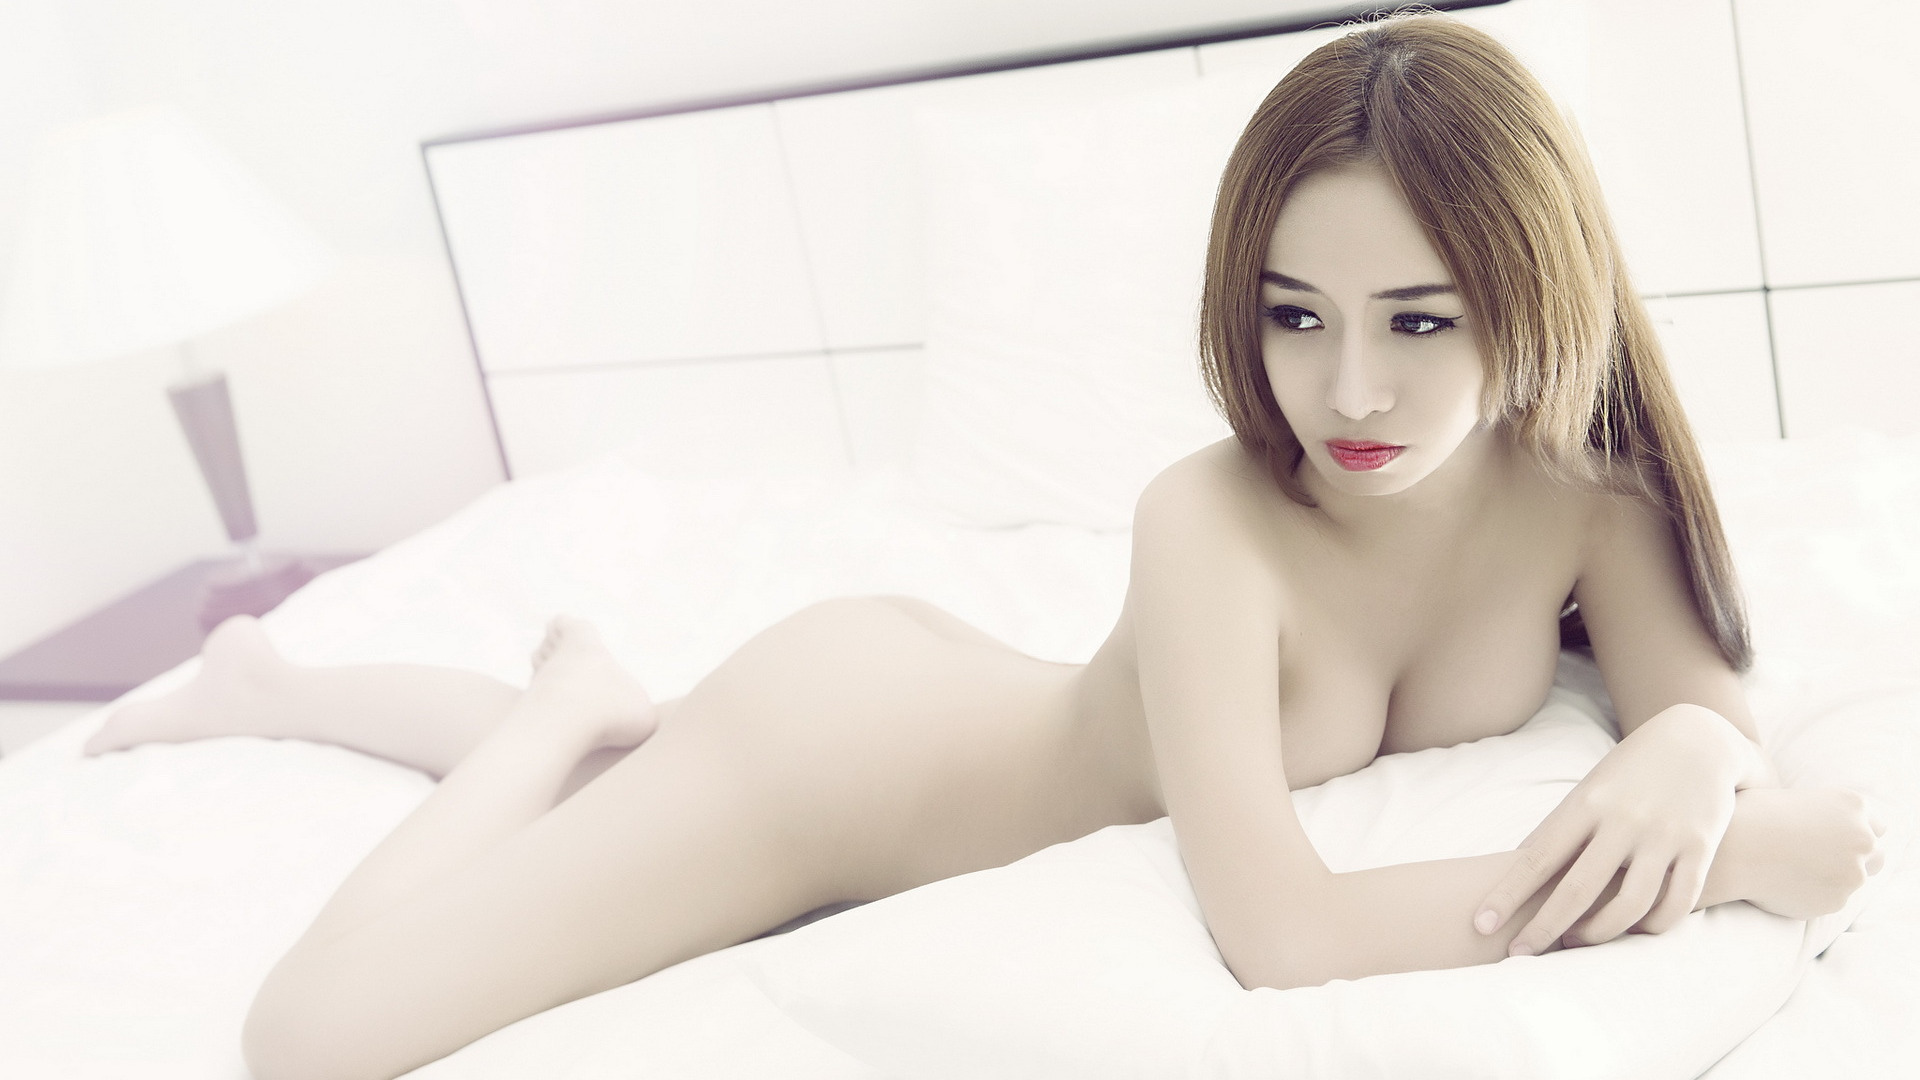 Naked granola sexy asian psp wallpaper rose asshole